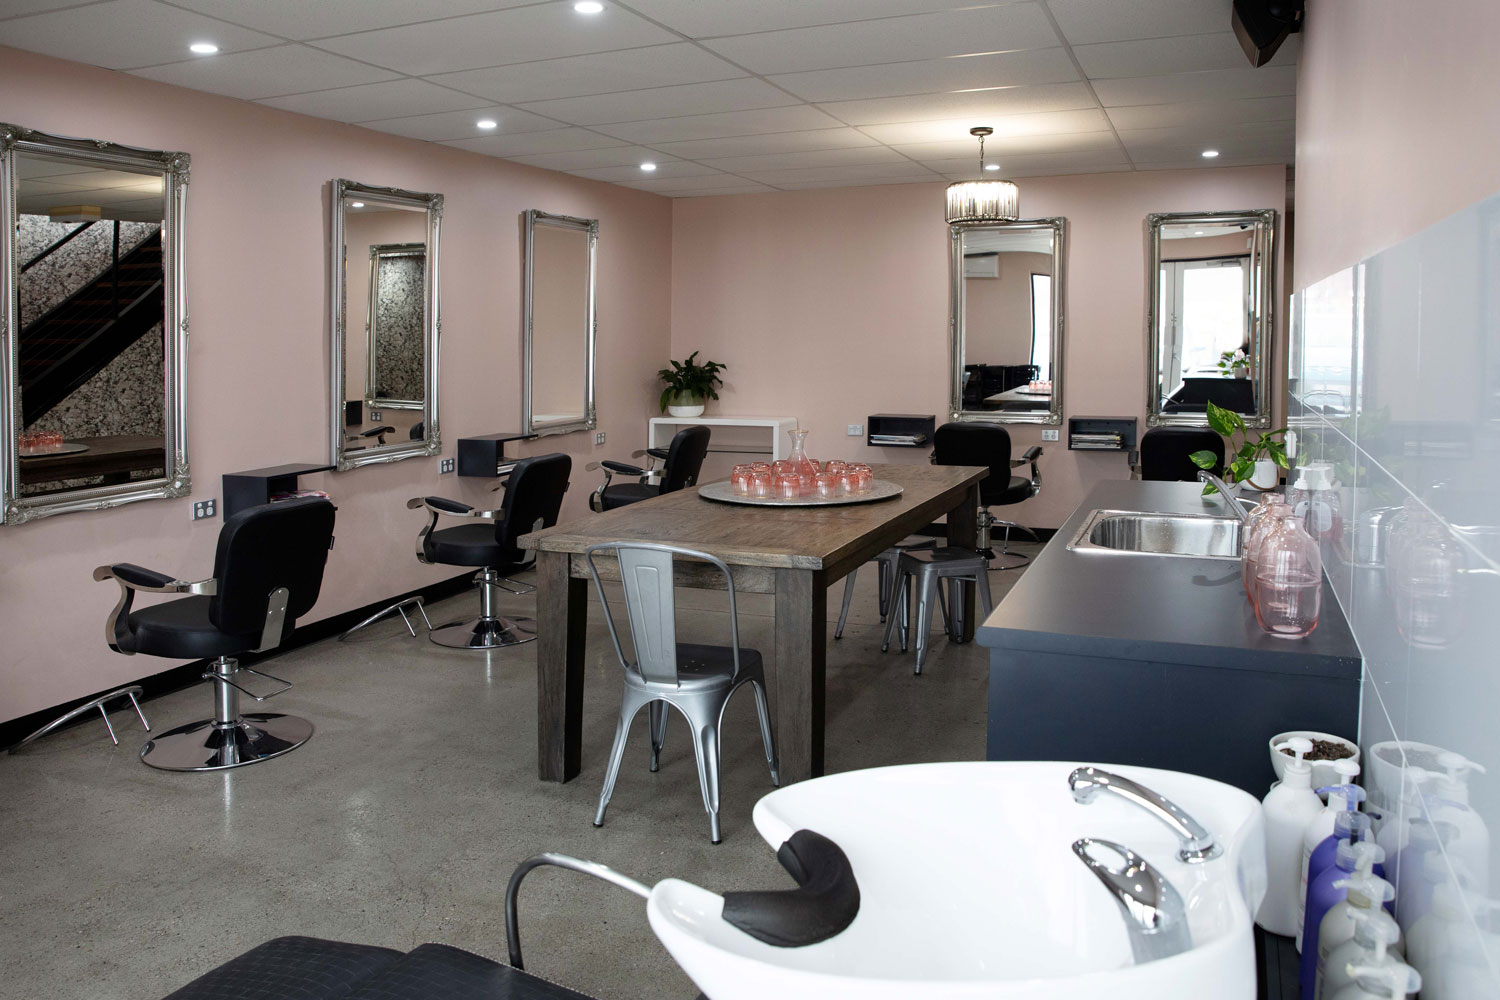 bhair salon floor extension